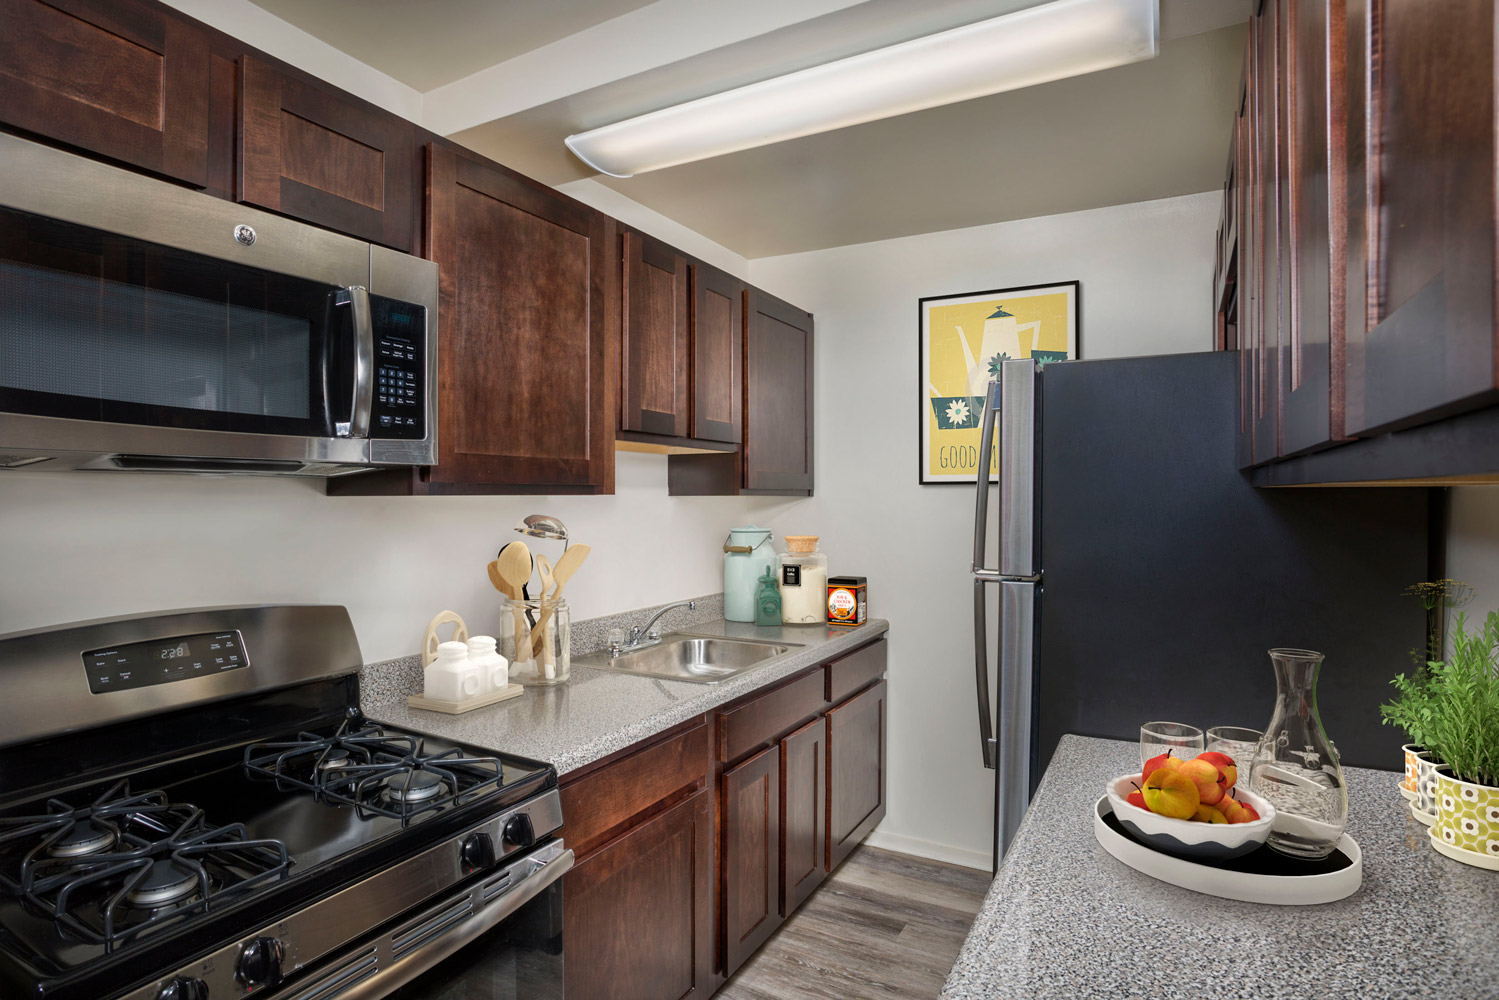 Upgraded kitchens available at Wayne Manchester Towers Apartments in Silver Spring, MD